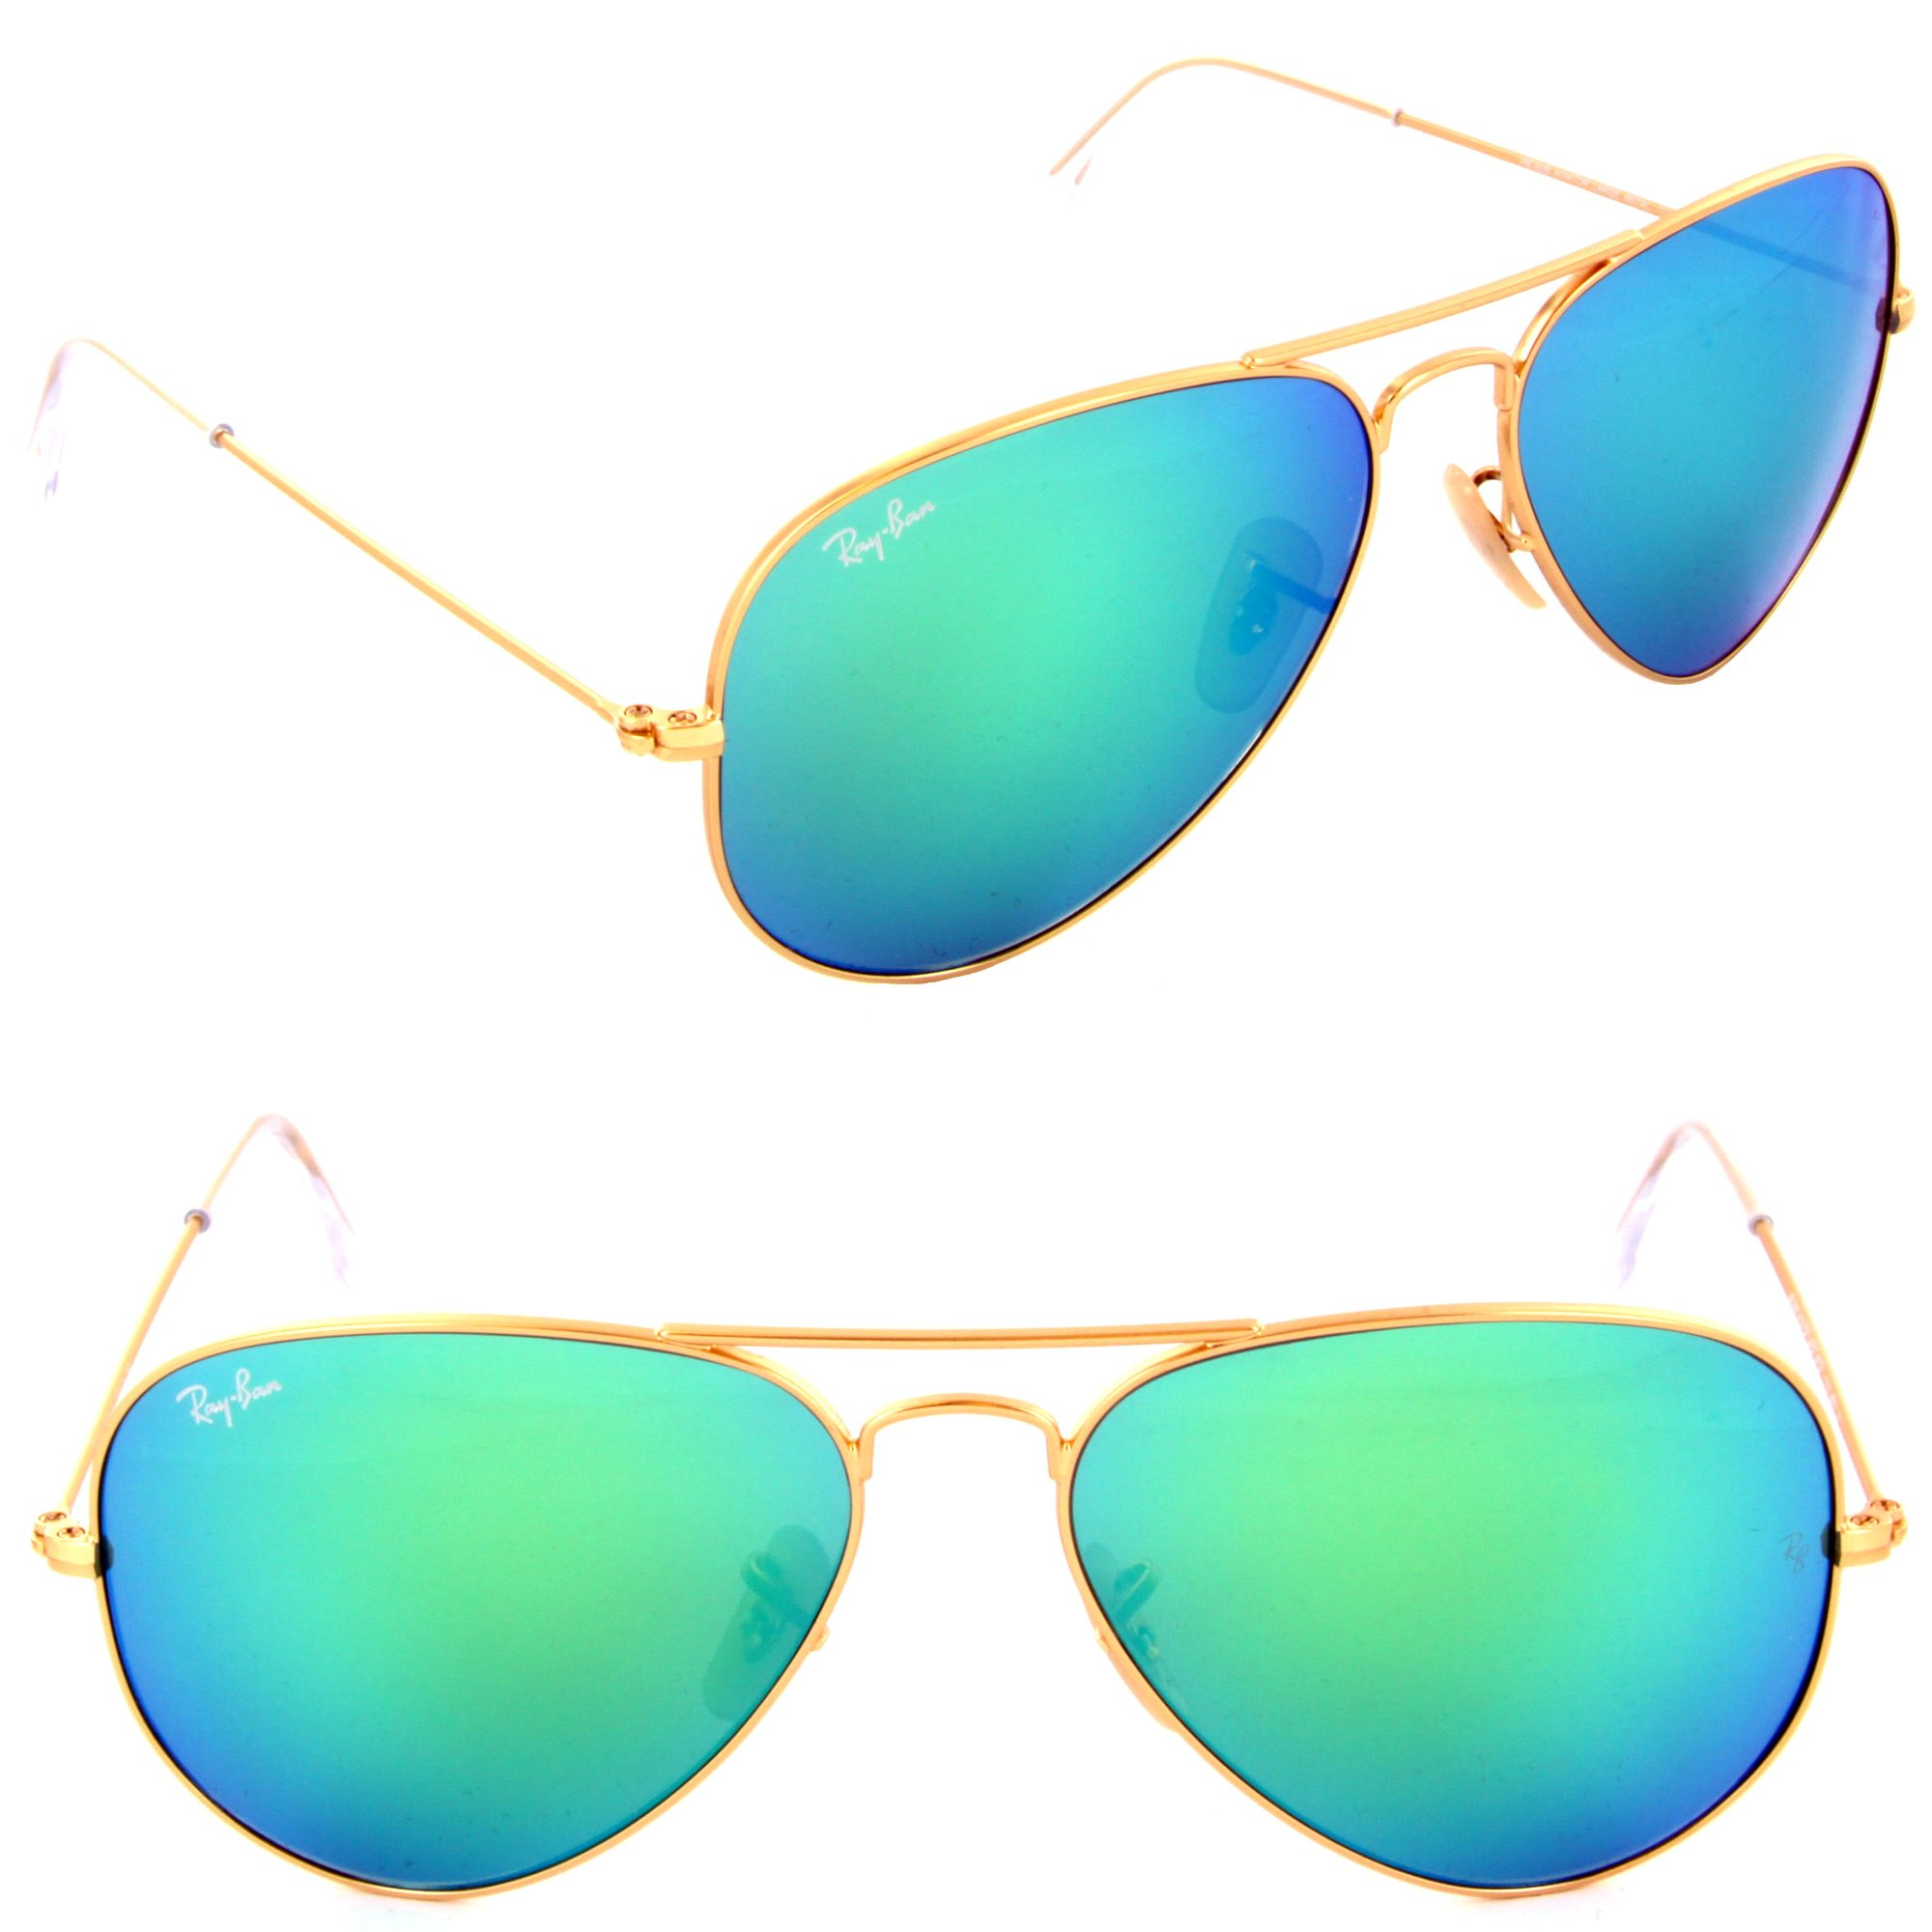 ray ban green gold aviators  Ray-Ban -- RB3025 Aviator Glasses -- $178.50 including lenses ...